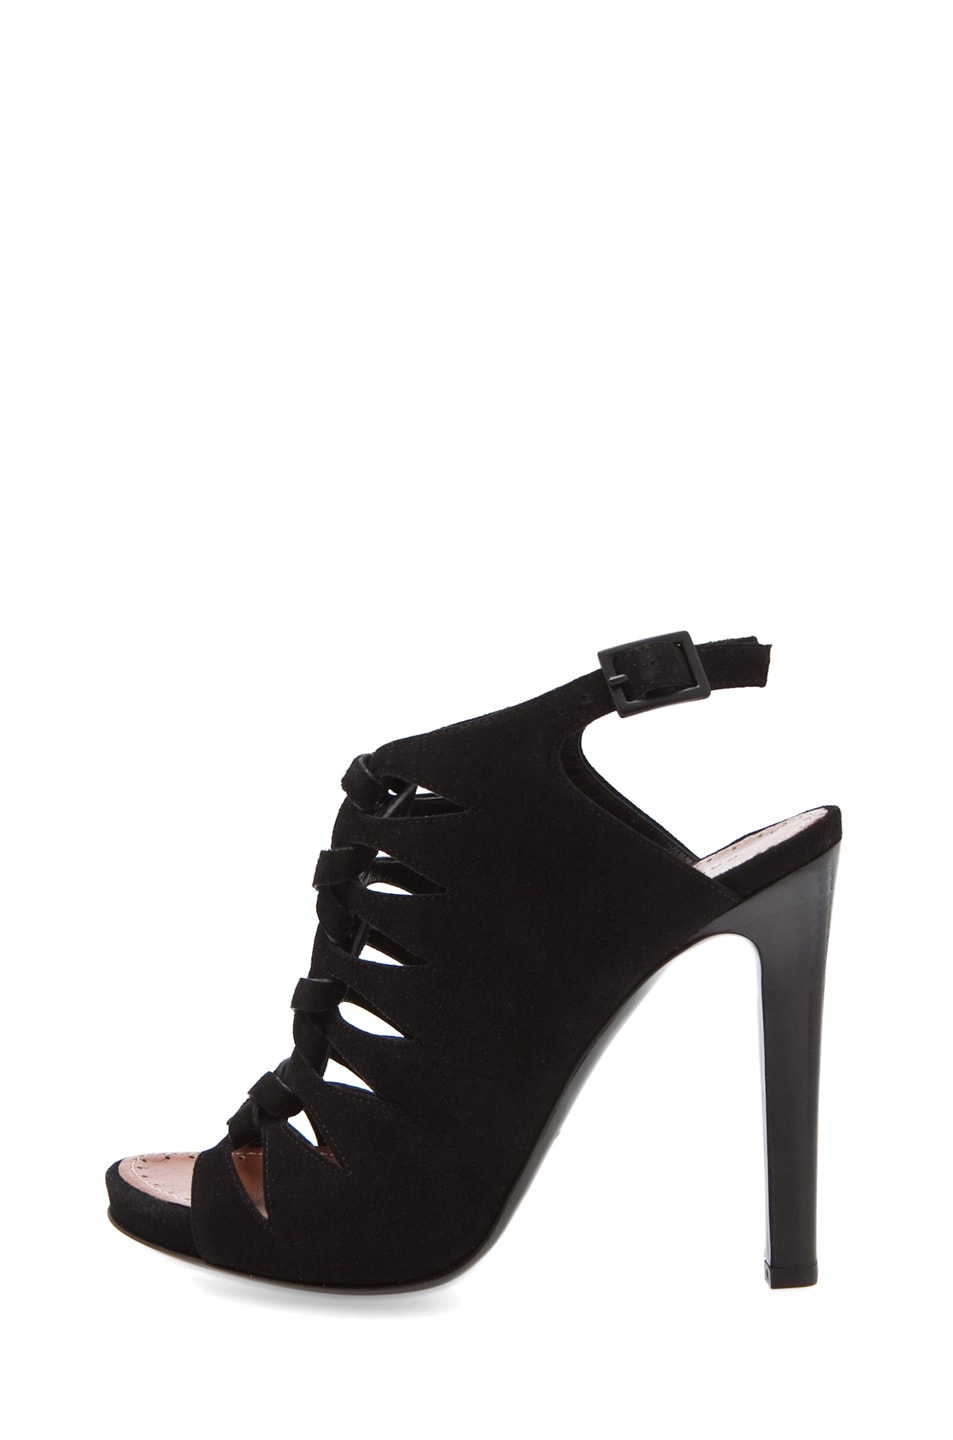 Image 1 of Proenza Schouler Strappy Heel in Black